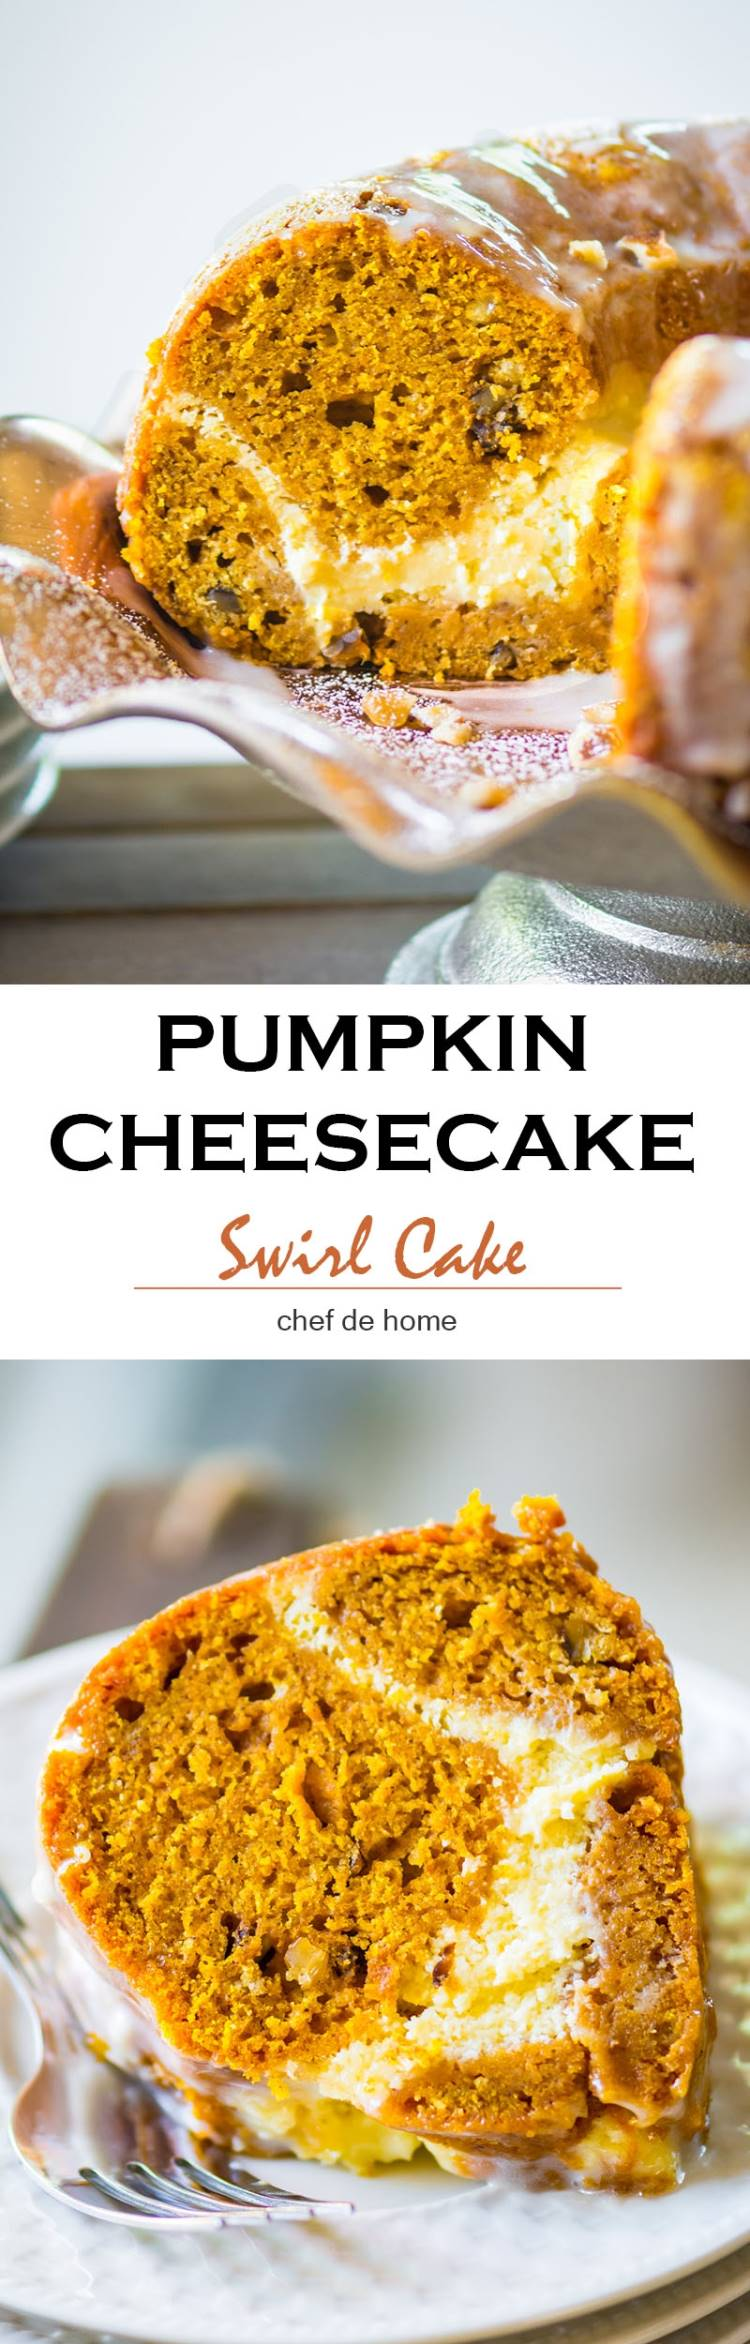 Moist and decadent Pumpkin Cake baked in bundt pan with citrus cheesecake swirl in the middle | chefdehome.com